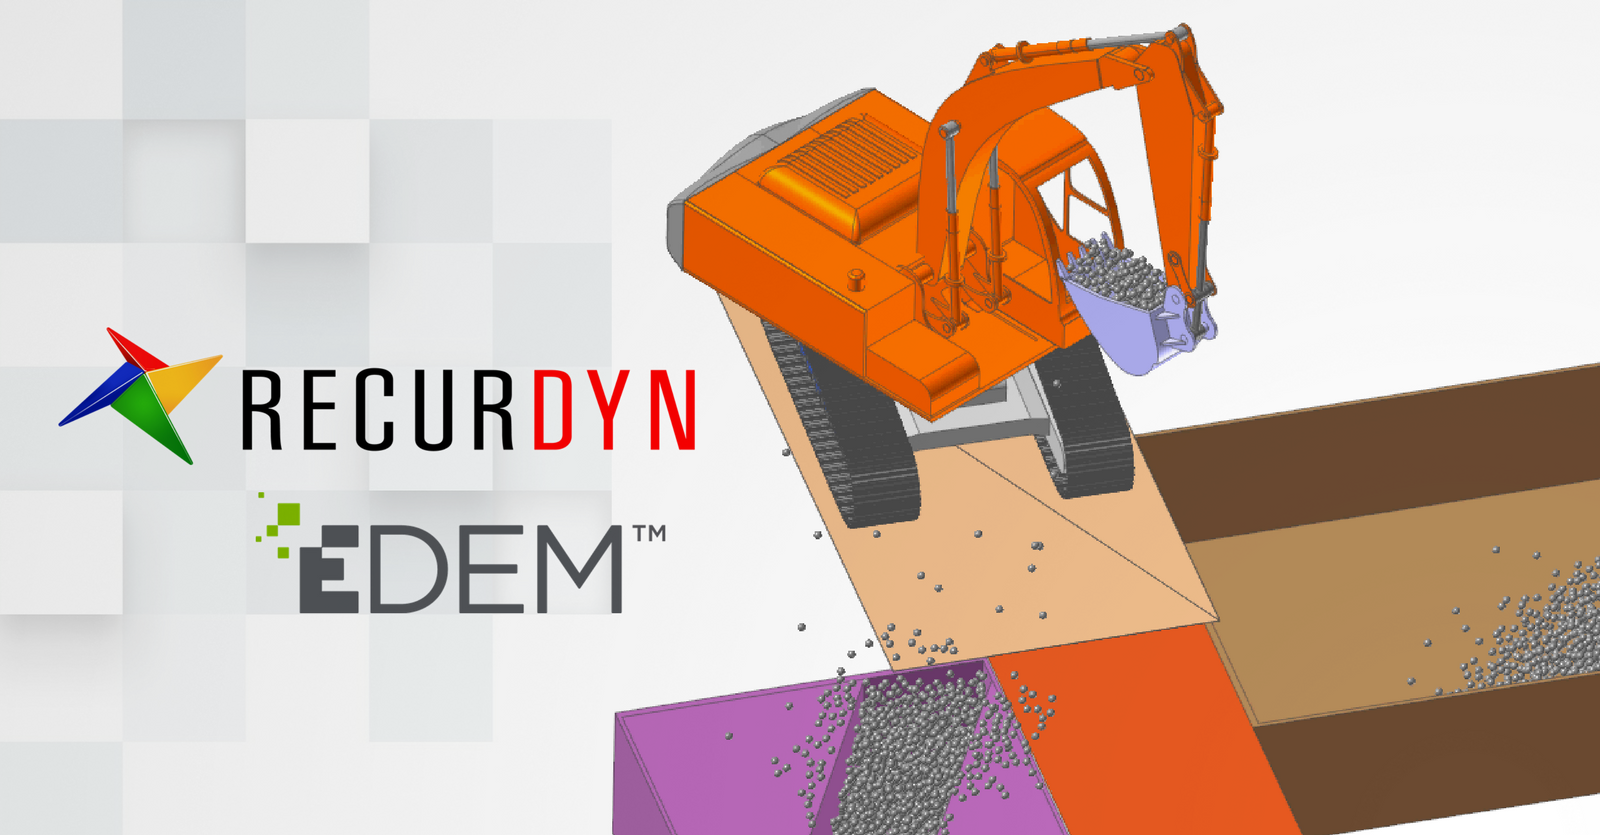 EDEM announces new co-simulation solution with multi-body dynamics package RecurDyn